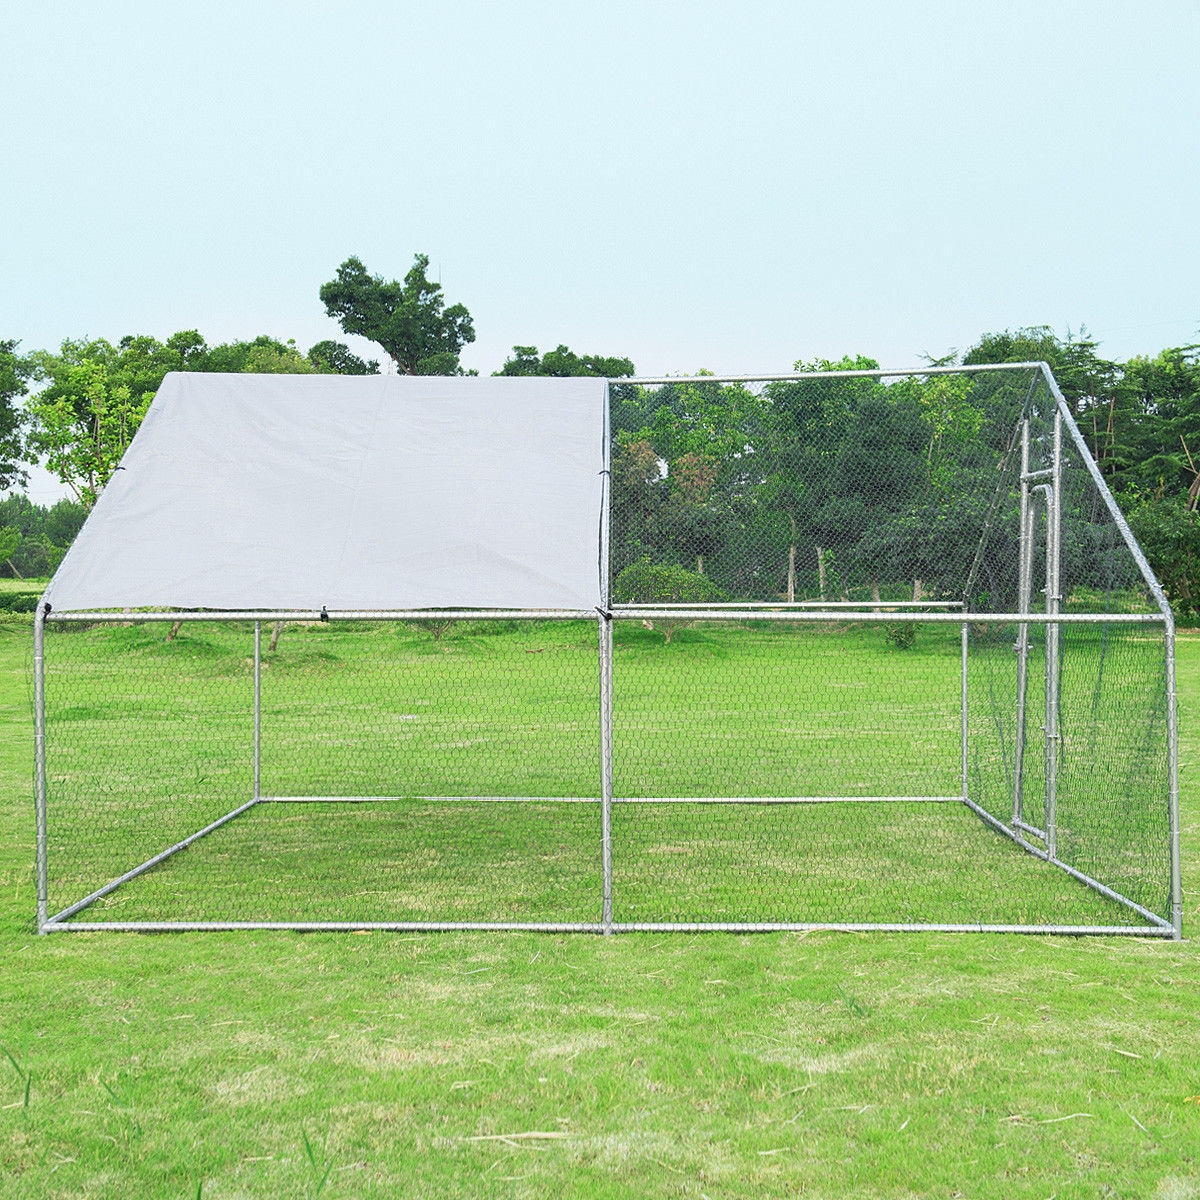 13' x 13' Large Animal Kennel with Roof Cover